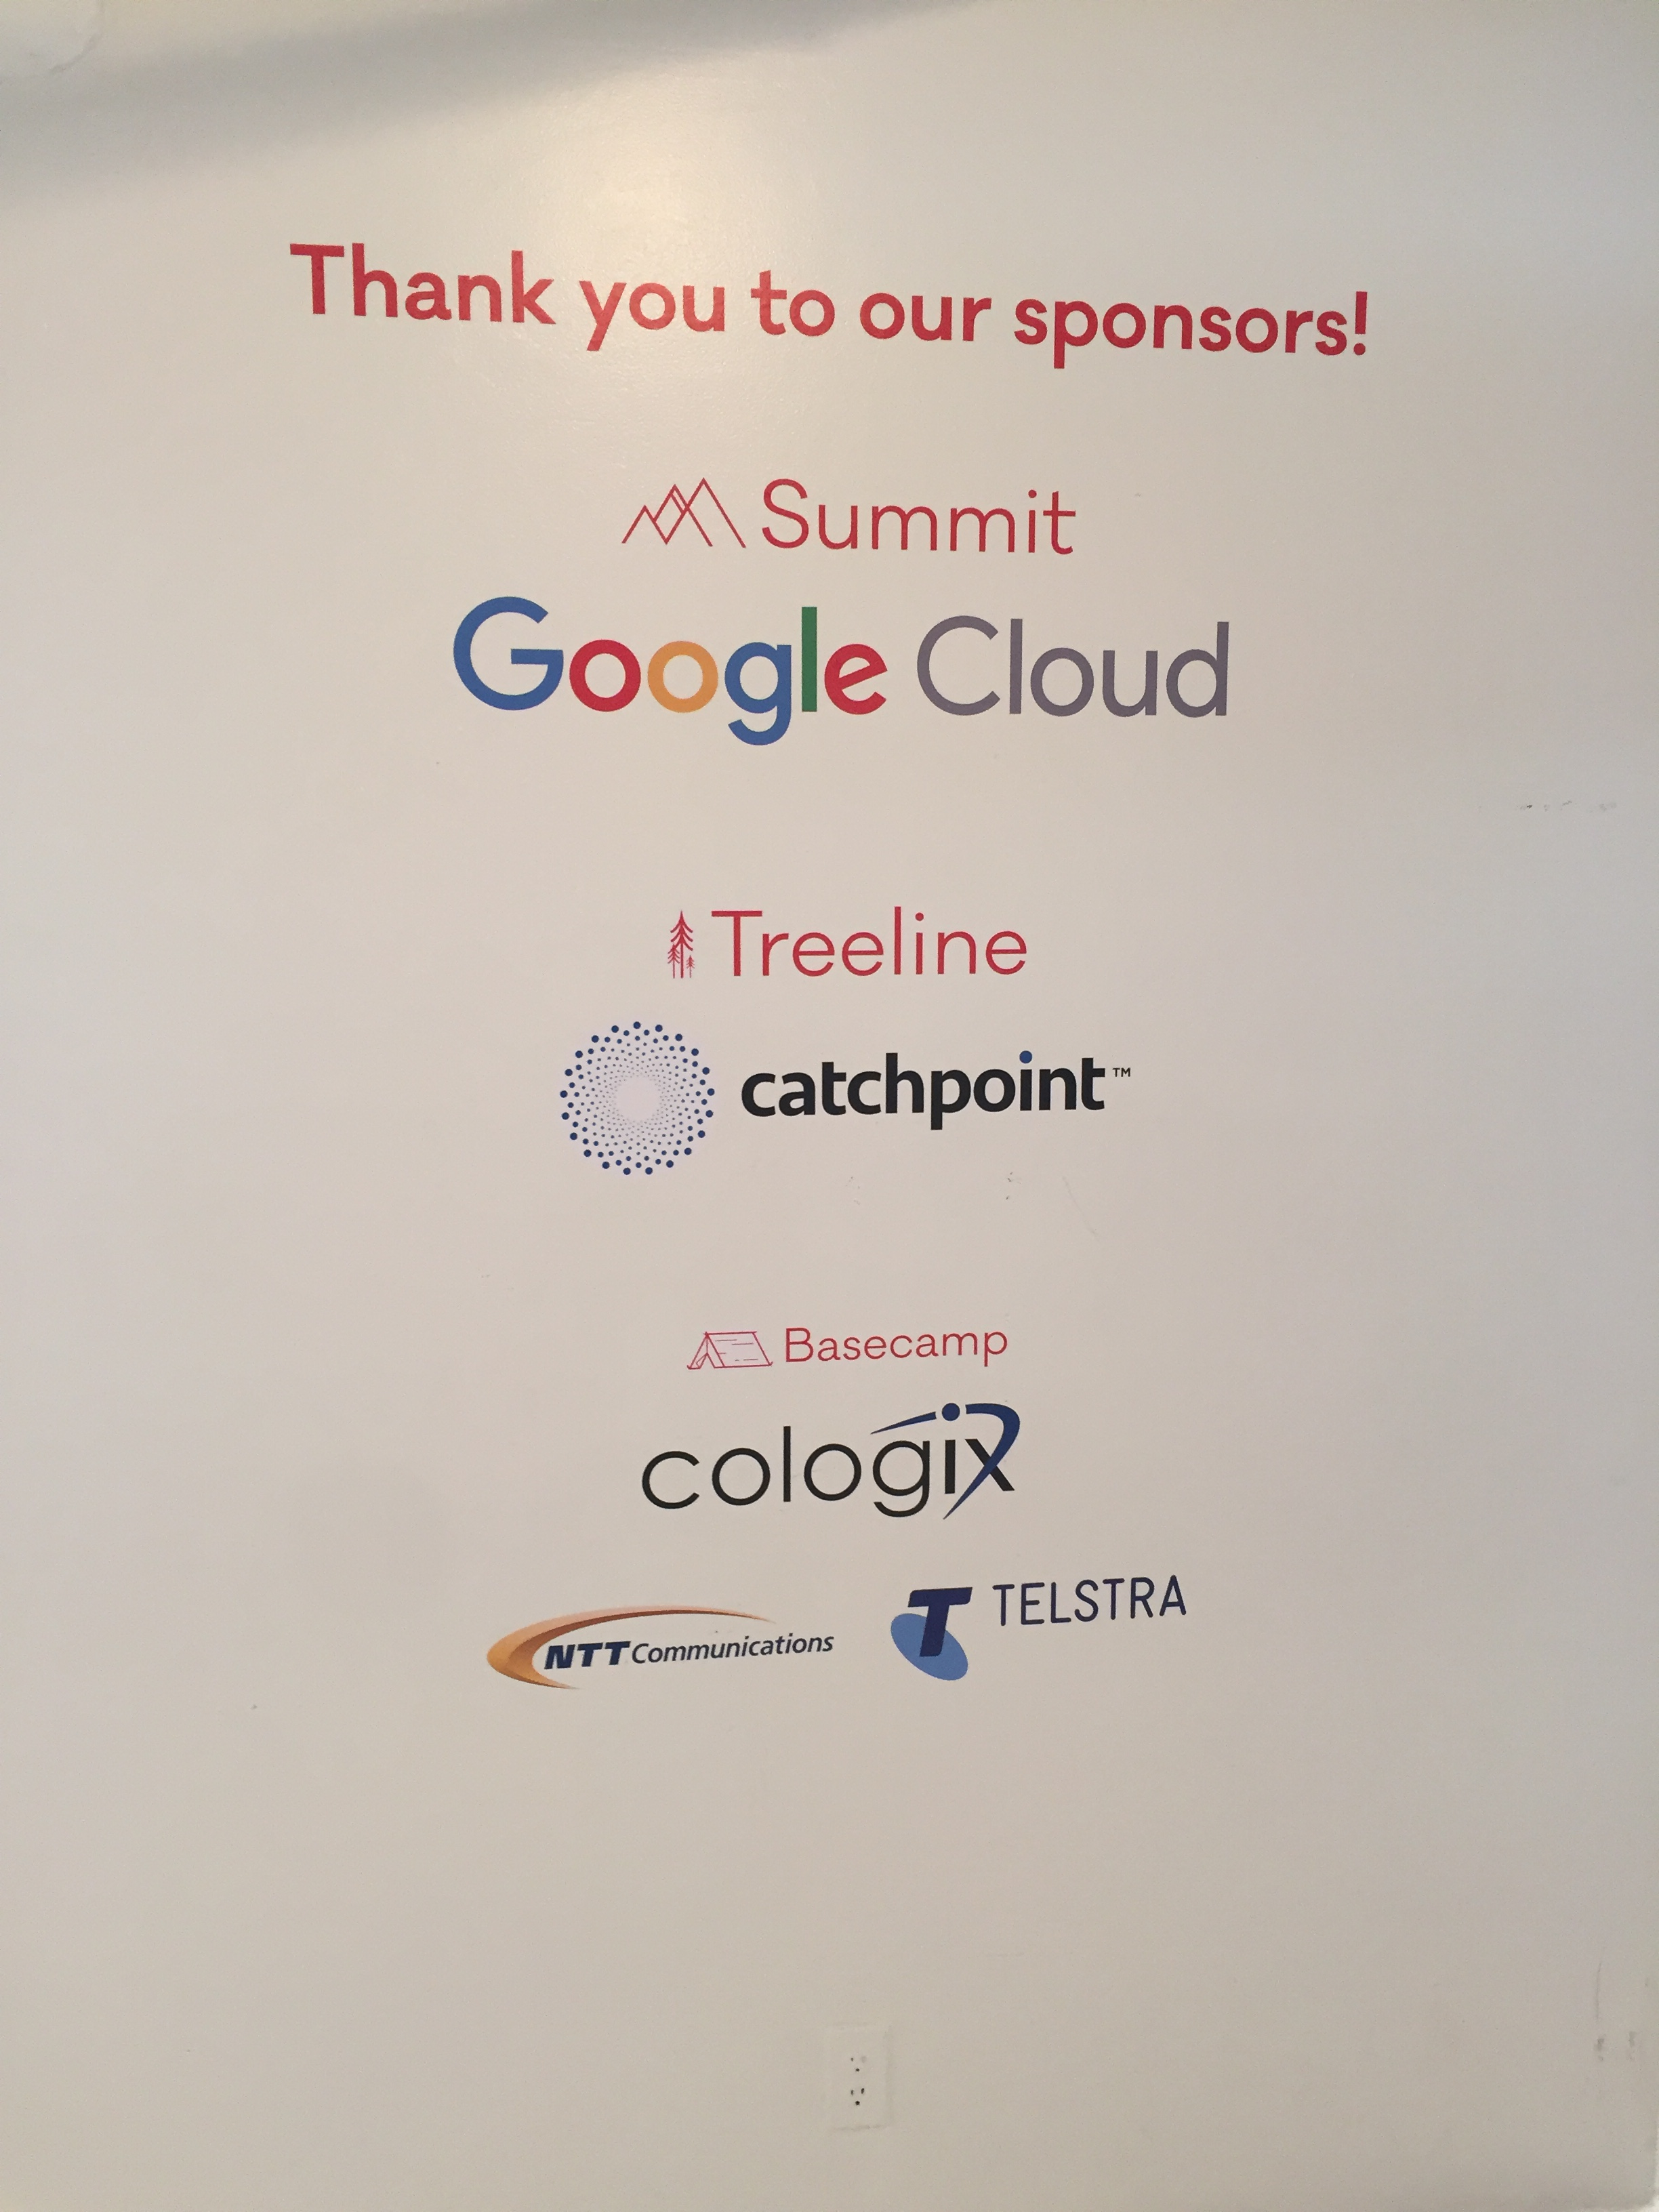 Proud sponsors of the Tech event